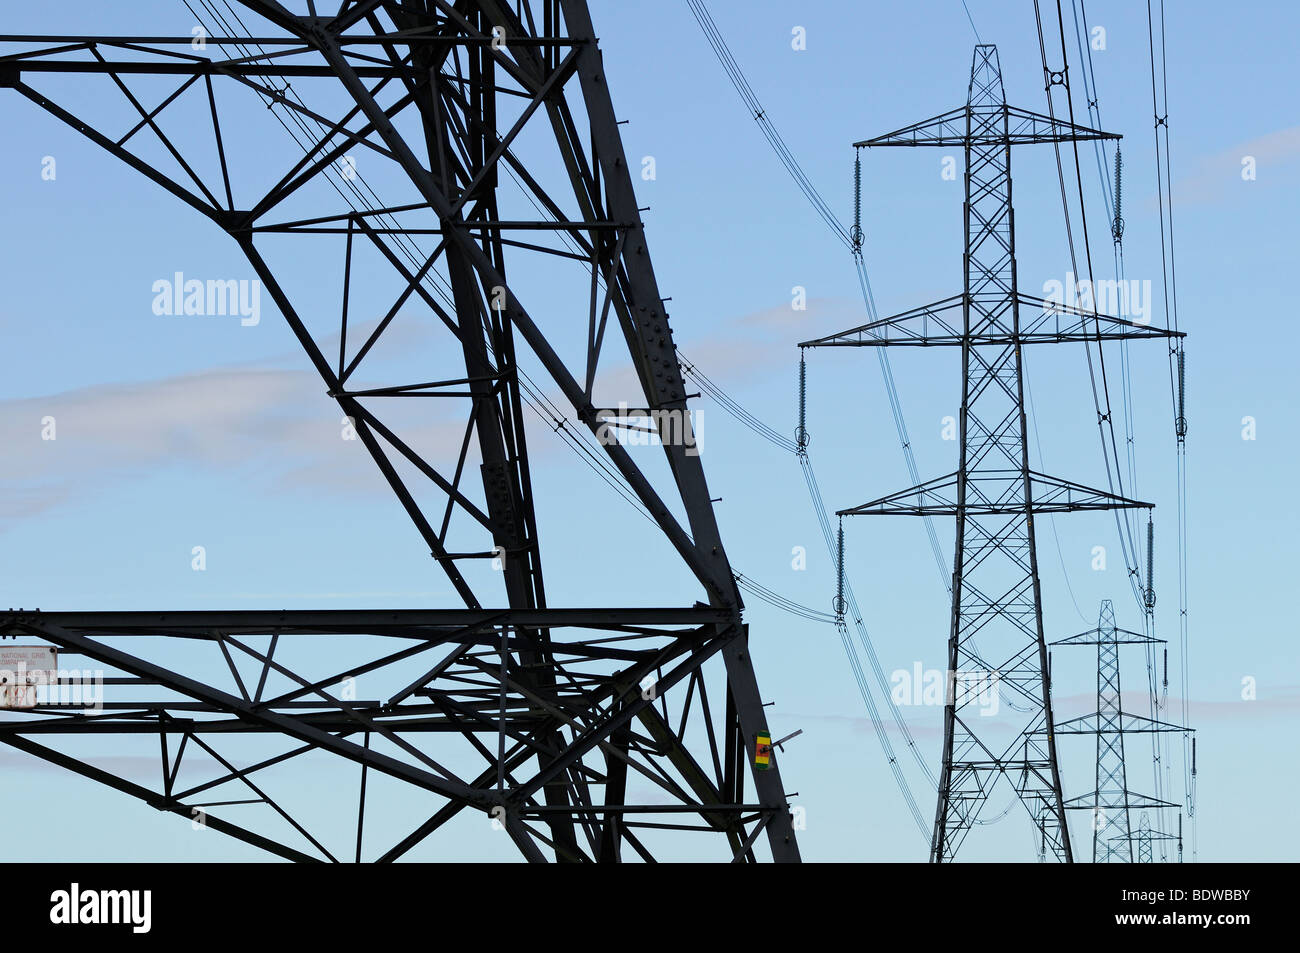 Electricity Pylons, Didcot, Oxfordshire, United Kingdom. - Stock Image